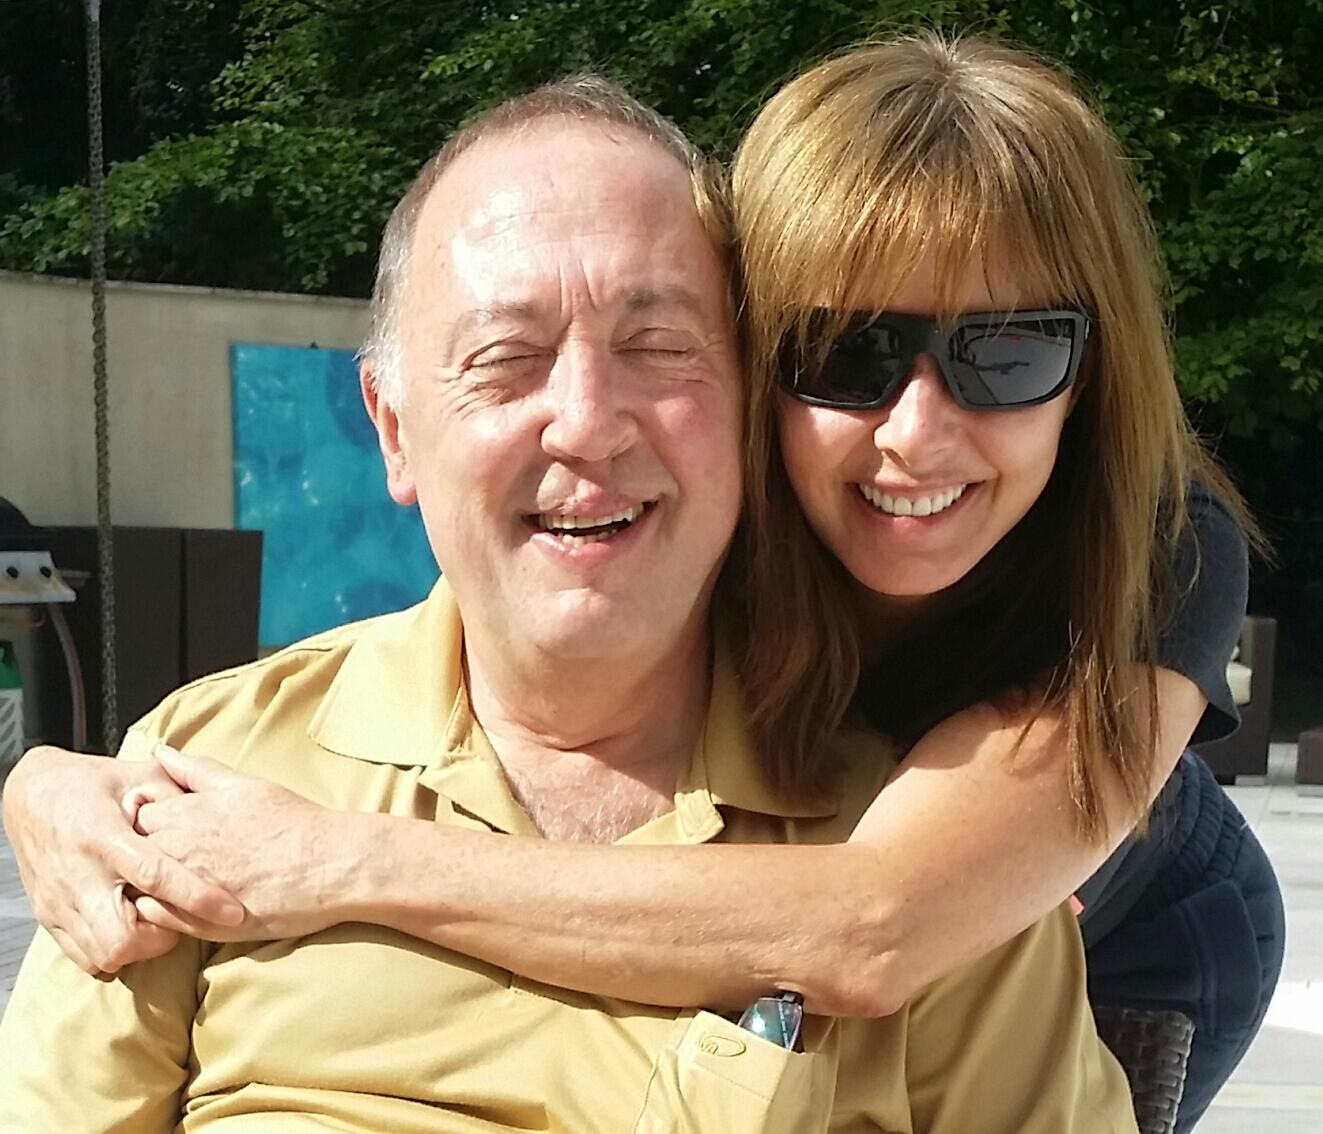 Me and my big brother Anton having a cuppa in the garden this morning xxx http://t.co/ayUB4DqhIE